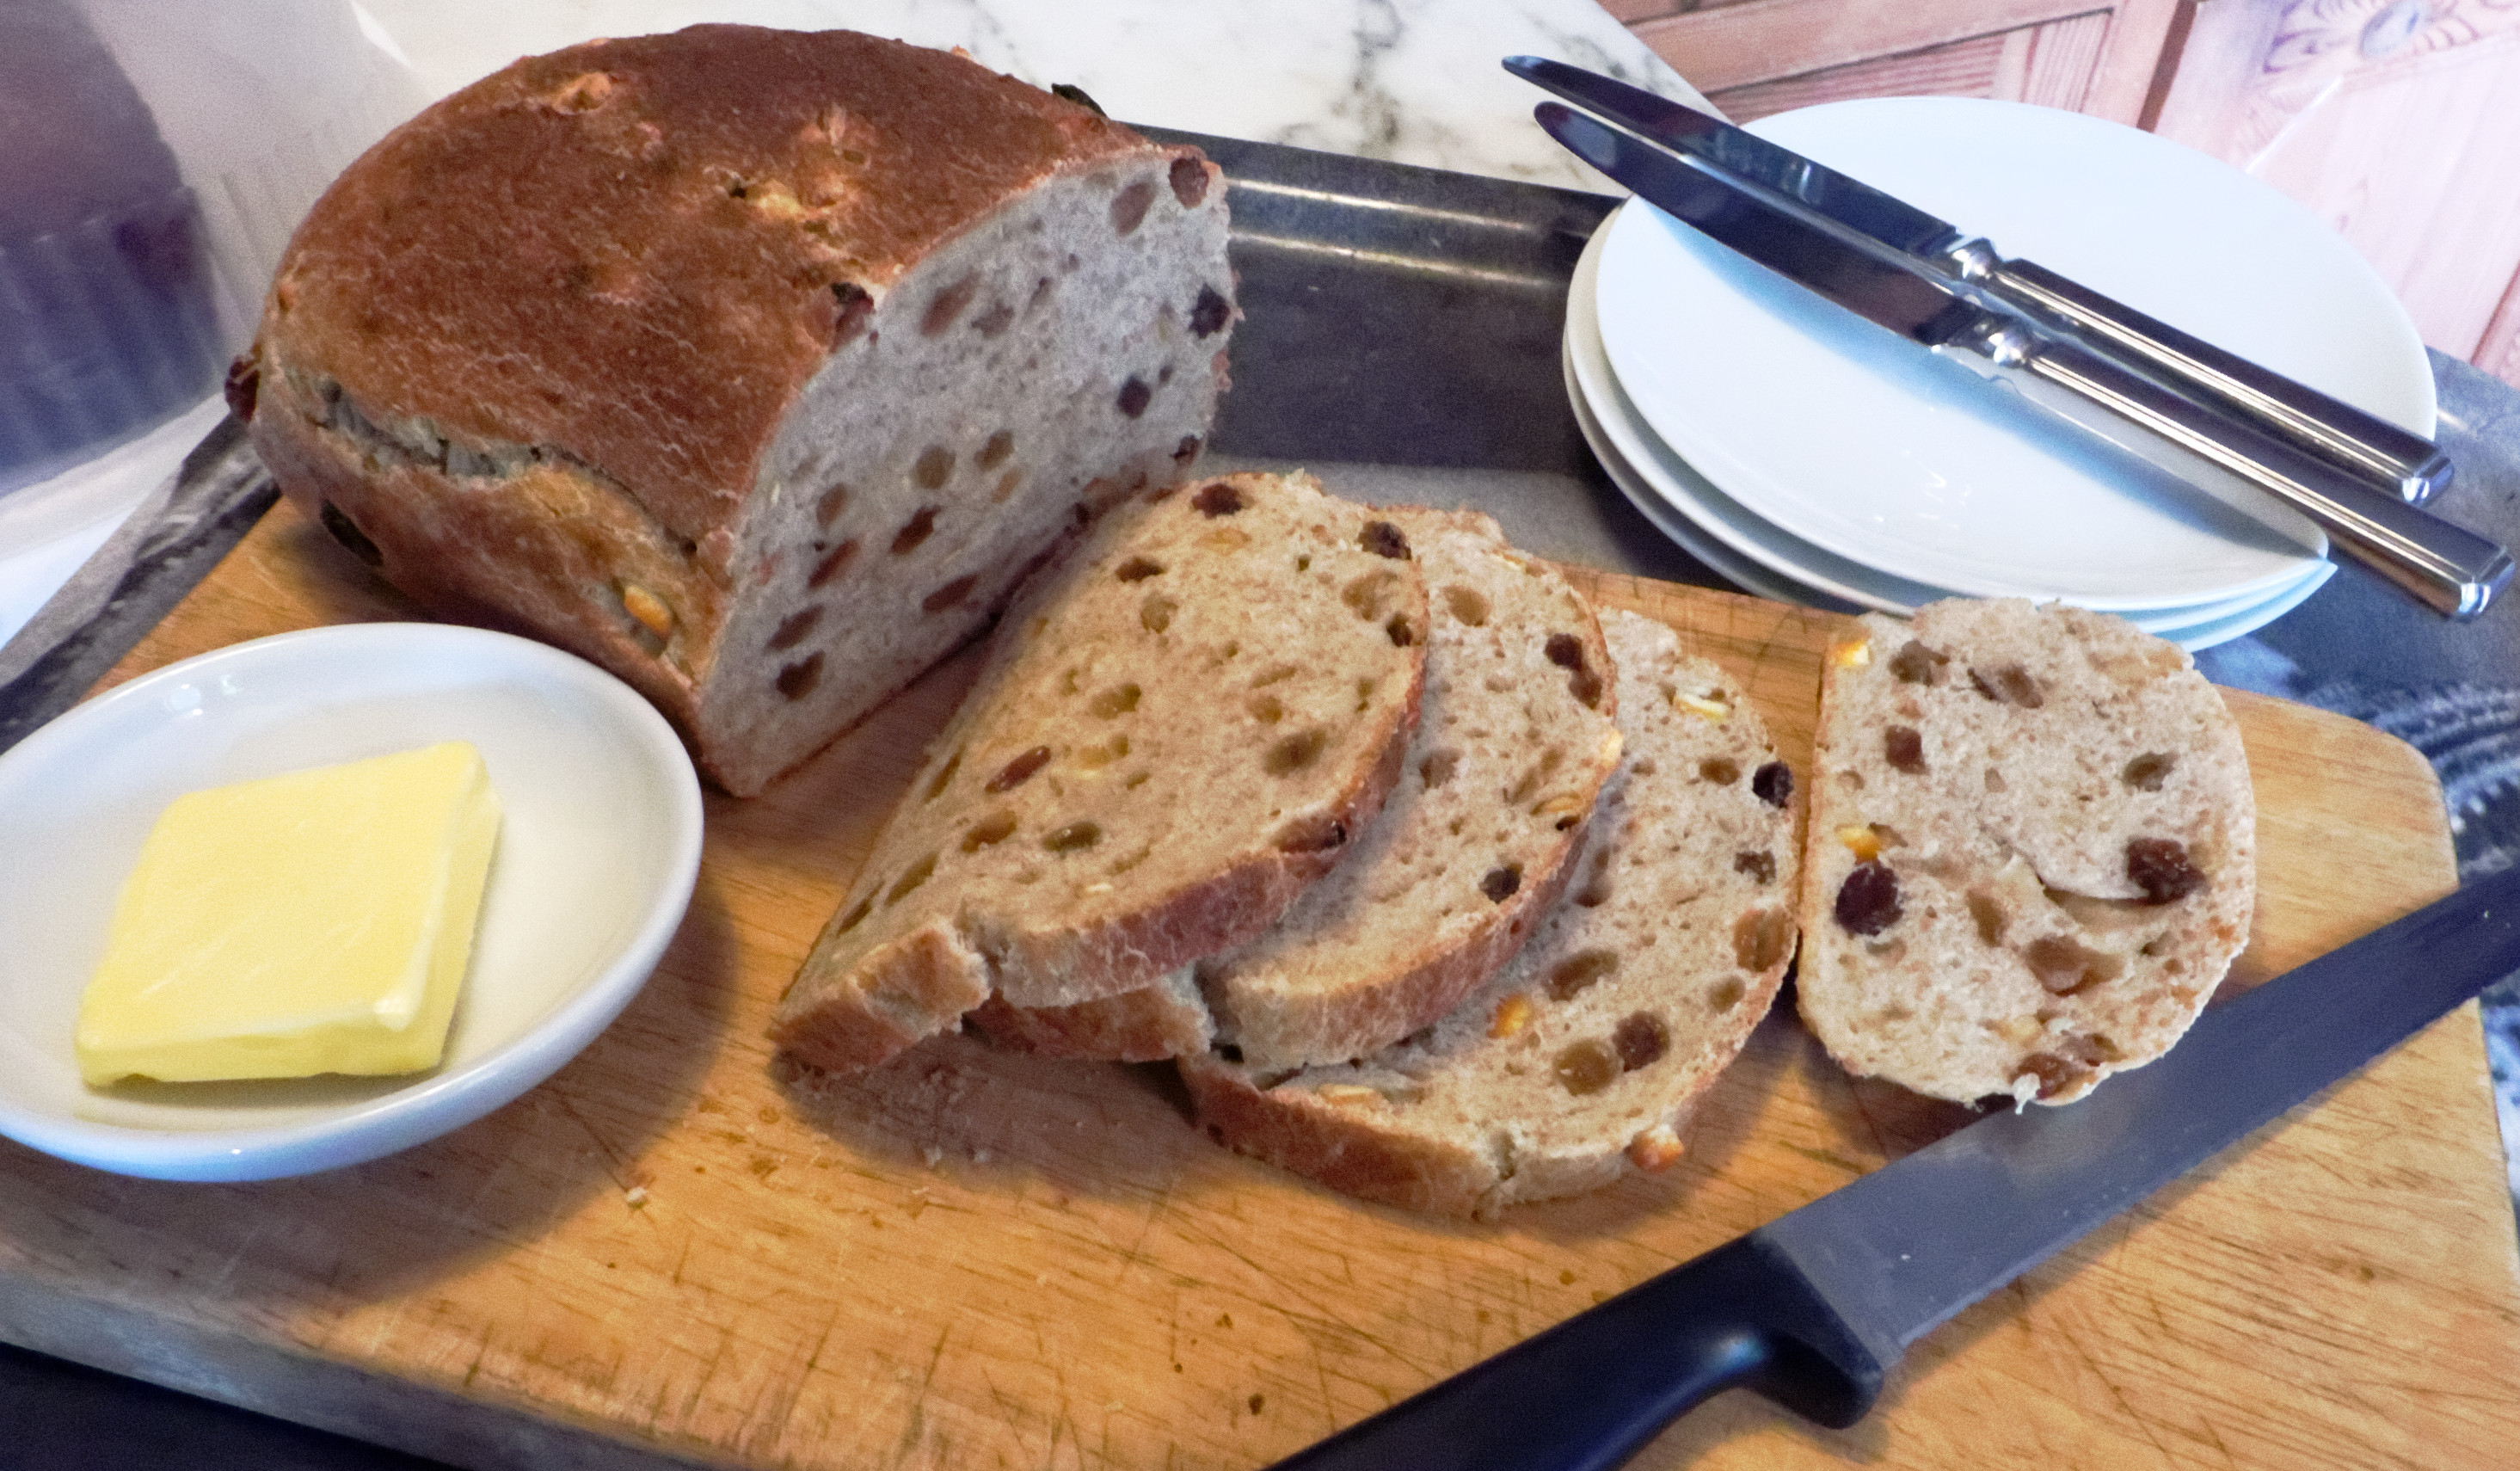 Apple and Cider Sourdough in the style of a Tea Loaf